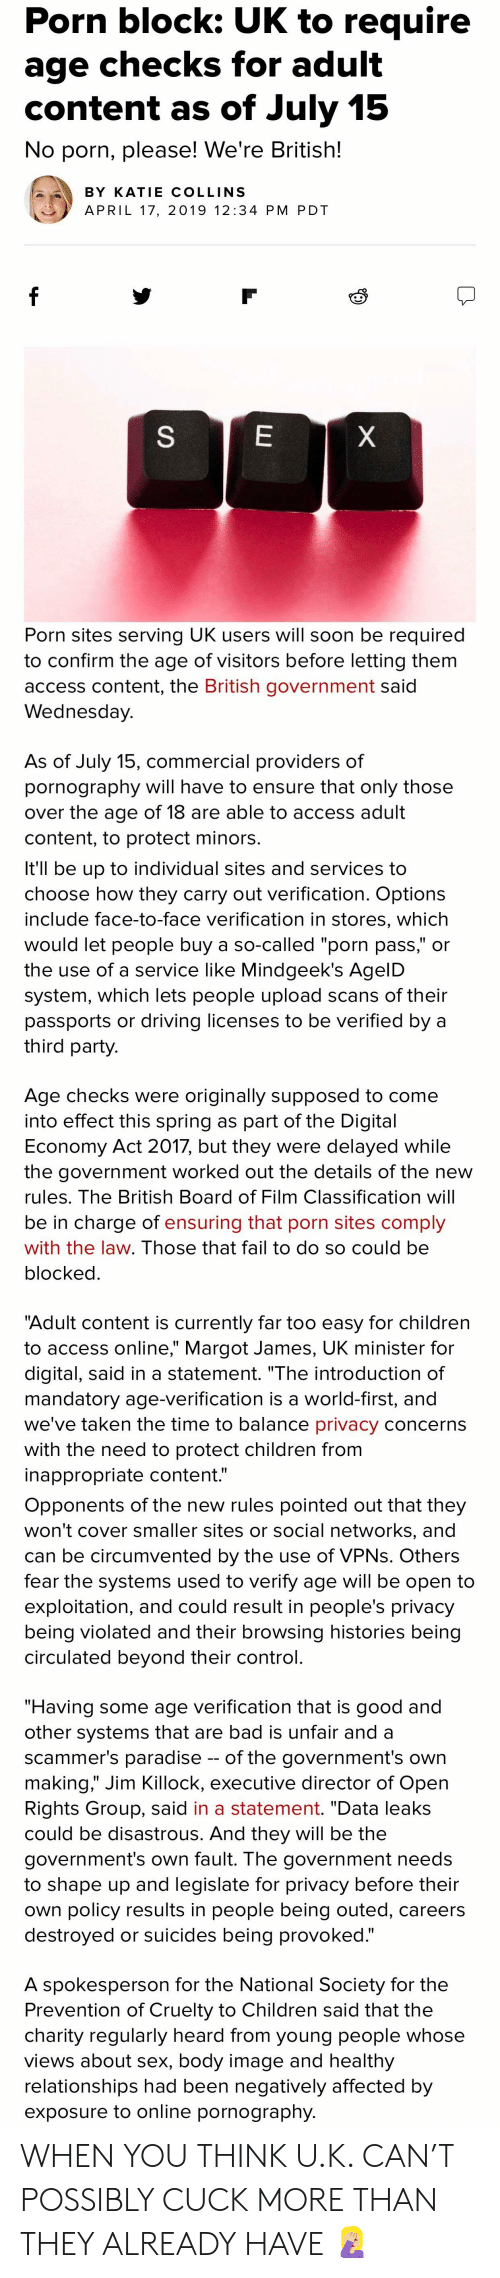 """Bad, Children, and Driving: Porn block: UK to require  age checks for adult  content as of July 15  No porn, please! We're British!  BY KATIE COLLINS  APRIL 17, 2019 12:34 PM PDT  Porn sites serving UK users will soon be required  to confirm the age of visitors before letting them  access content, the British government said  Wednesday  As of July 15, commercial providers of  pornography will have to ensure that only those  over the age of 18 are able to access adult  content, to protect minors  It'll be up to individual sites and services to  choose how they carry out verification. Options  include face-to-face verification in stores, which  would let people buy a so-called """"porn pass,"""" or  the use of a service like Mindgeek's AgelD  system, which lets people upload scans of their  passports or driving licenses to be verified by a  third party  Age checks were originally supposed to come  into effect this spring as part of the Digital  Economy Act 2017, but they were delayed while  the government worked out the details of the new  rules. The British Board of Film Classification will  be in charge of ensuring that porn sites comply  with the law. Those that fail to do so could be  blocked  """"Adult content is currently far too easy for children  to access online,"""" Margot James, UK minister for  digital, said in a statement. """"The introduction of  mandatory age-verification is a world-first, and  we've taken the time to balance privacy concerns  with the need to protect children from  inappropriate content.""""  Opponents of the new rules pointed out that they  won't cover smaller sites or social networks, and  can be circumvented by the use of VPNs. Others  fear the systems used to verify age will be open to  exploitation, and could result in people's privacy  being violated and their browsing histories being  circulated beyond their control  """"Having some age verification that is good and  other systems that are bad is unfair and a  scammer's paradise -- of the government"""